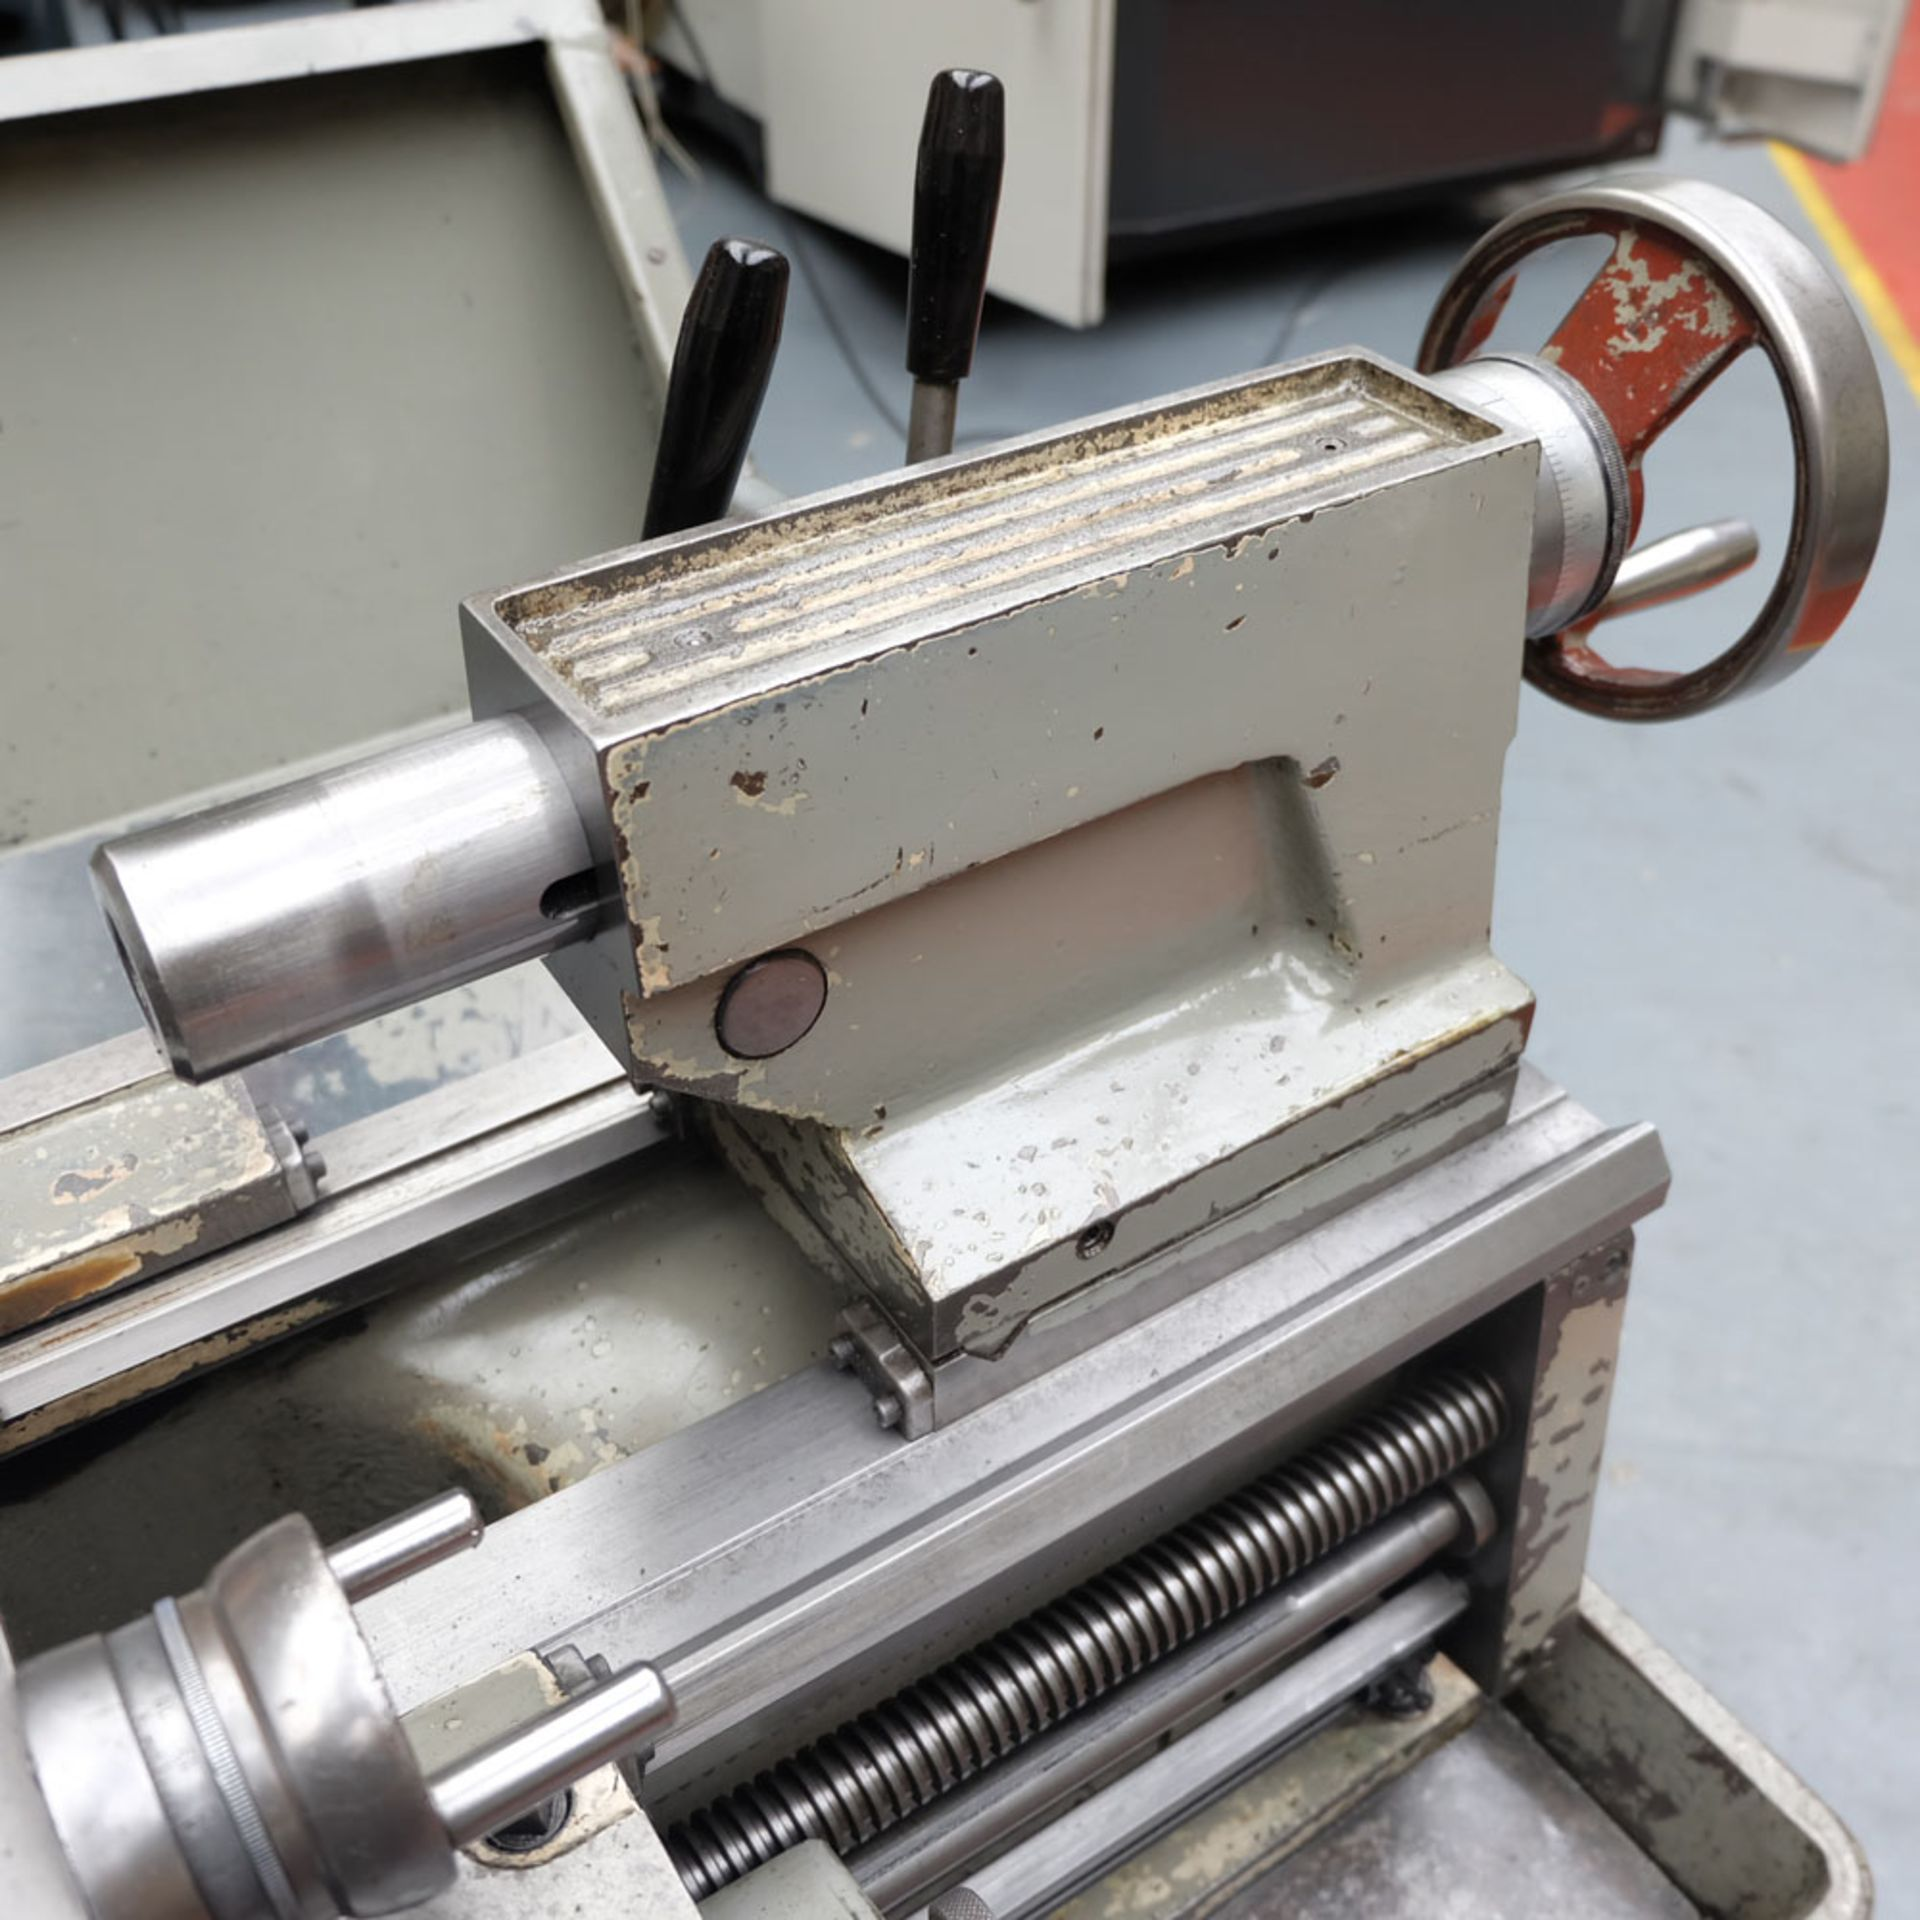 Colchester Student 1800 Gap Bed Centre Lathe. - Image 7 of 8